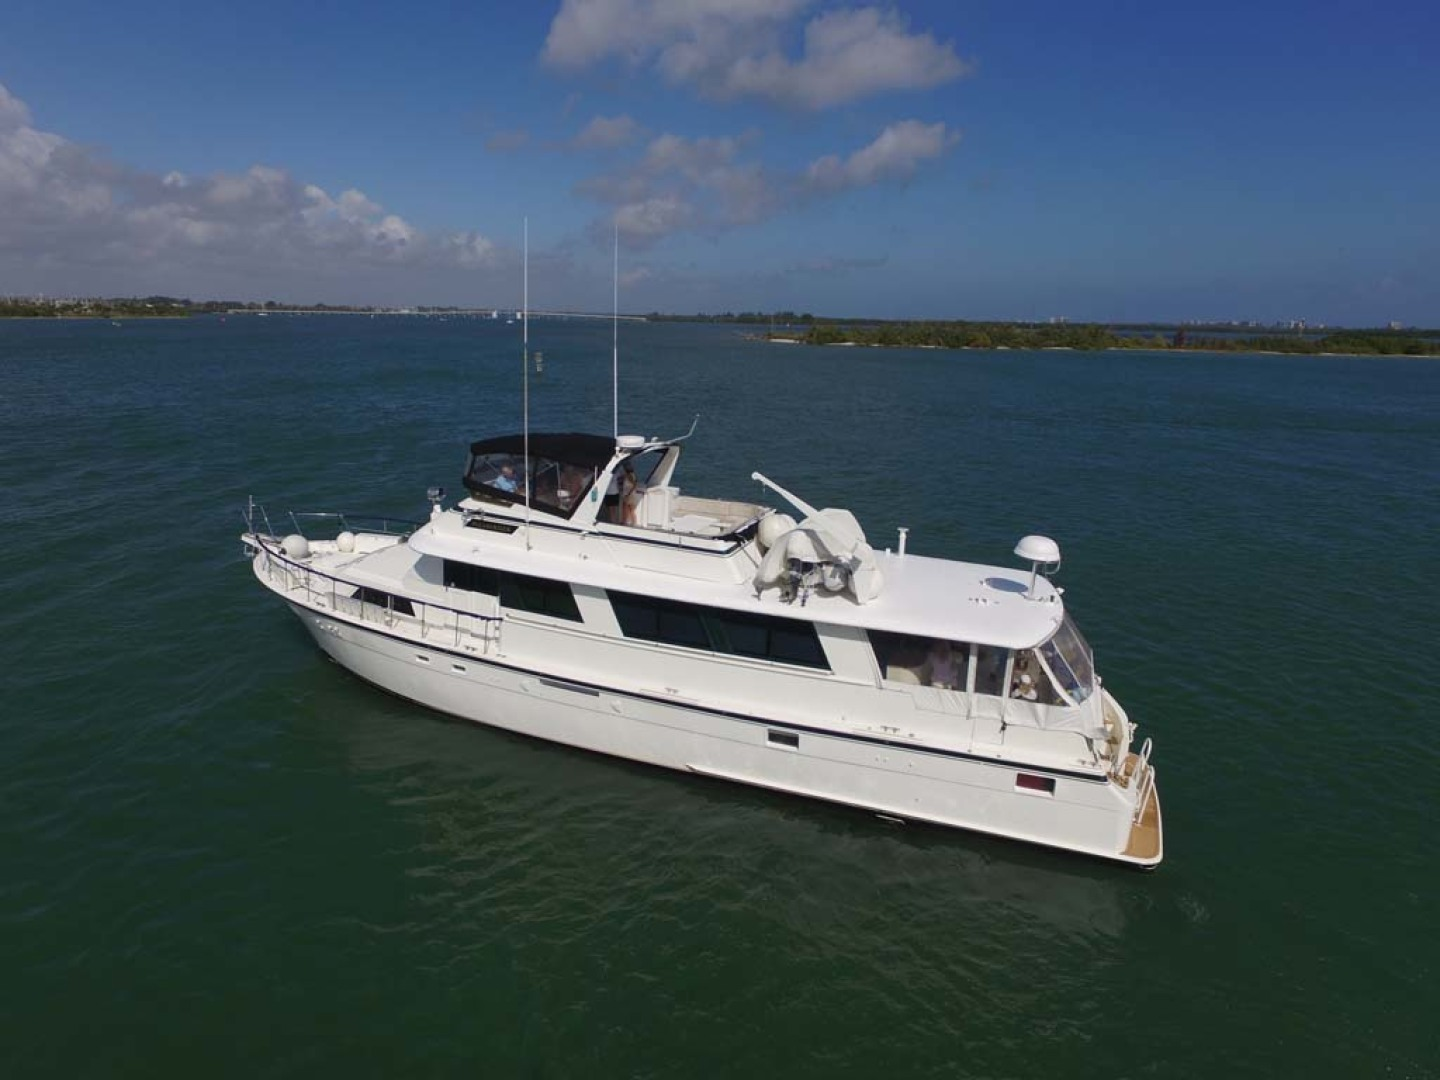 Hatteras-74 Motor Yacht 1981-Pleasurizer Fort Pierce-Florida-United States-Port Side-1122242 | Thumbnail